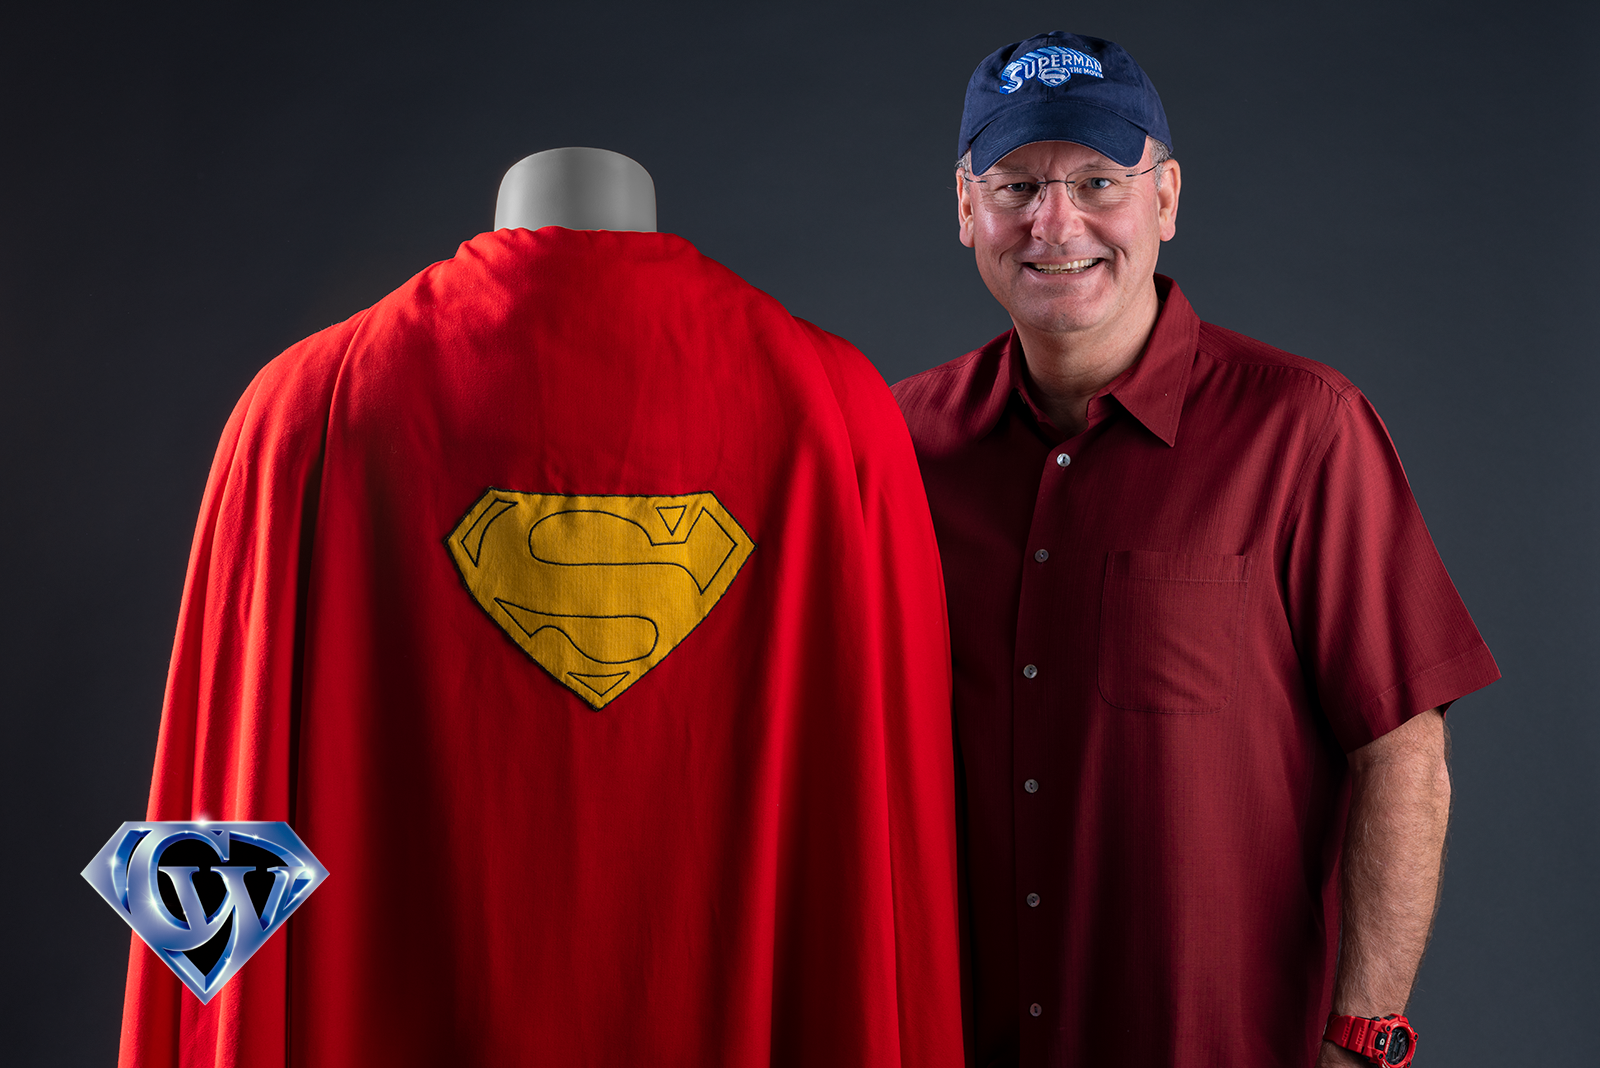 Jim Bowers with Second Superman Movie Contest Caped, December 15, 2019 at Julien's Auctions